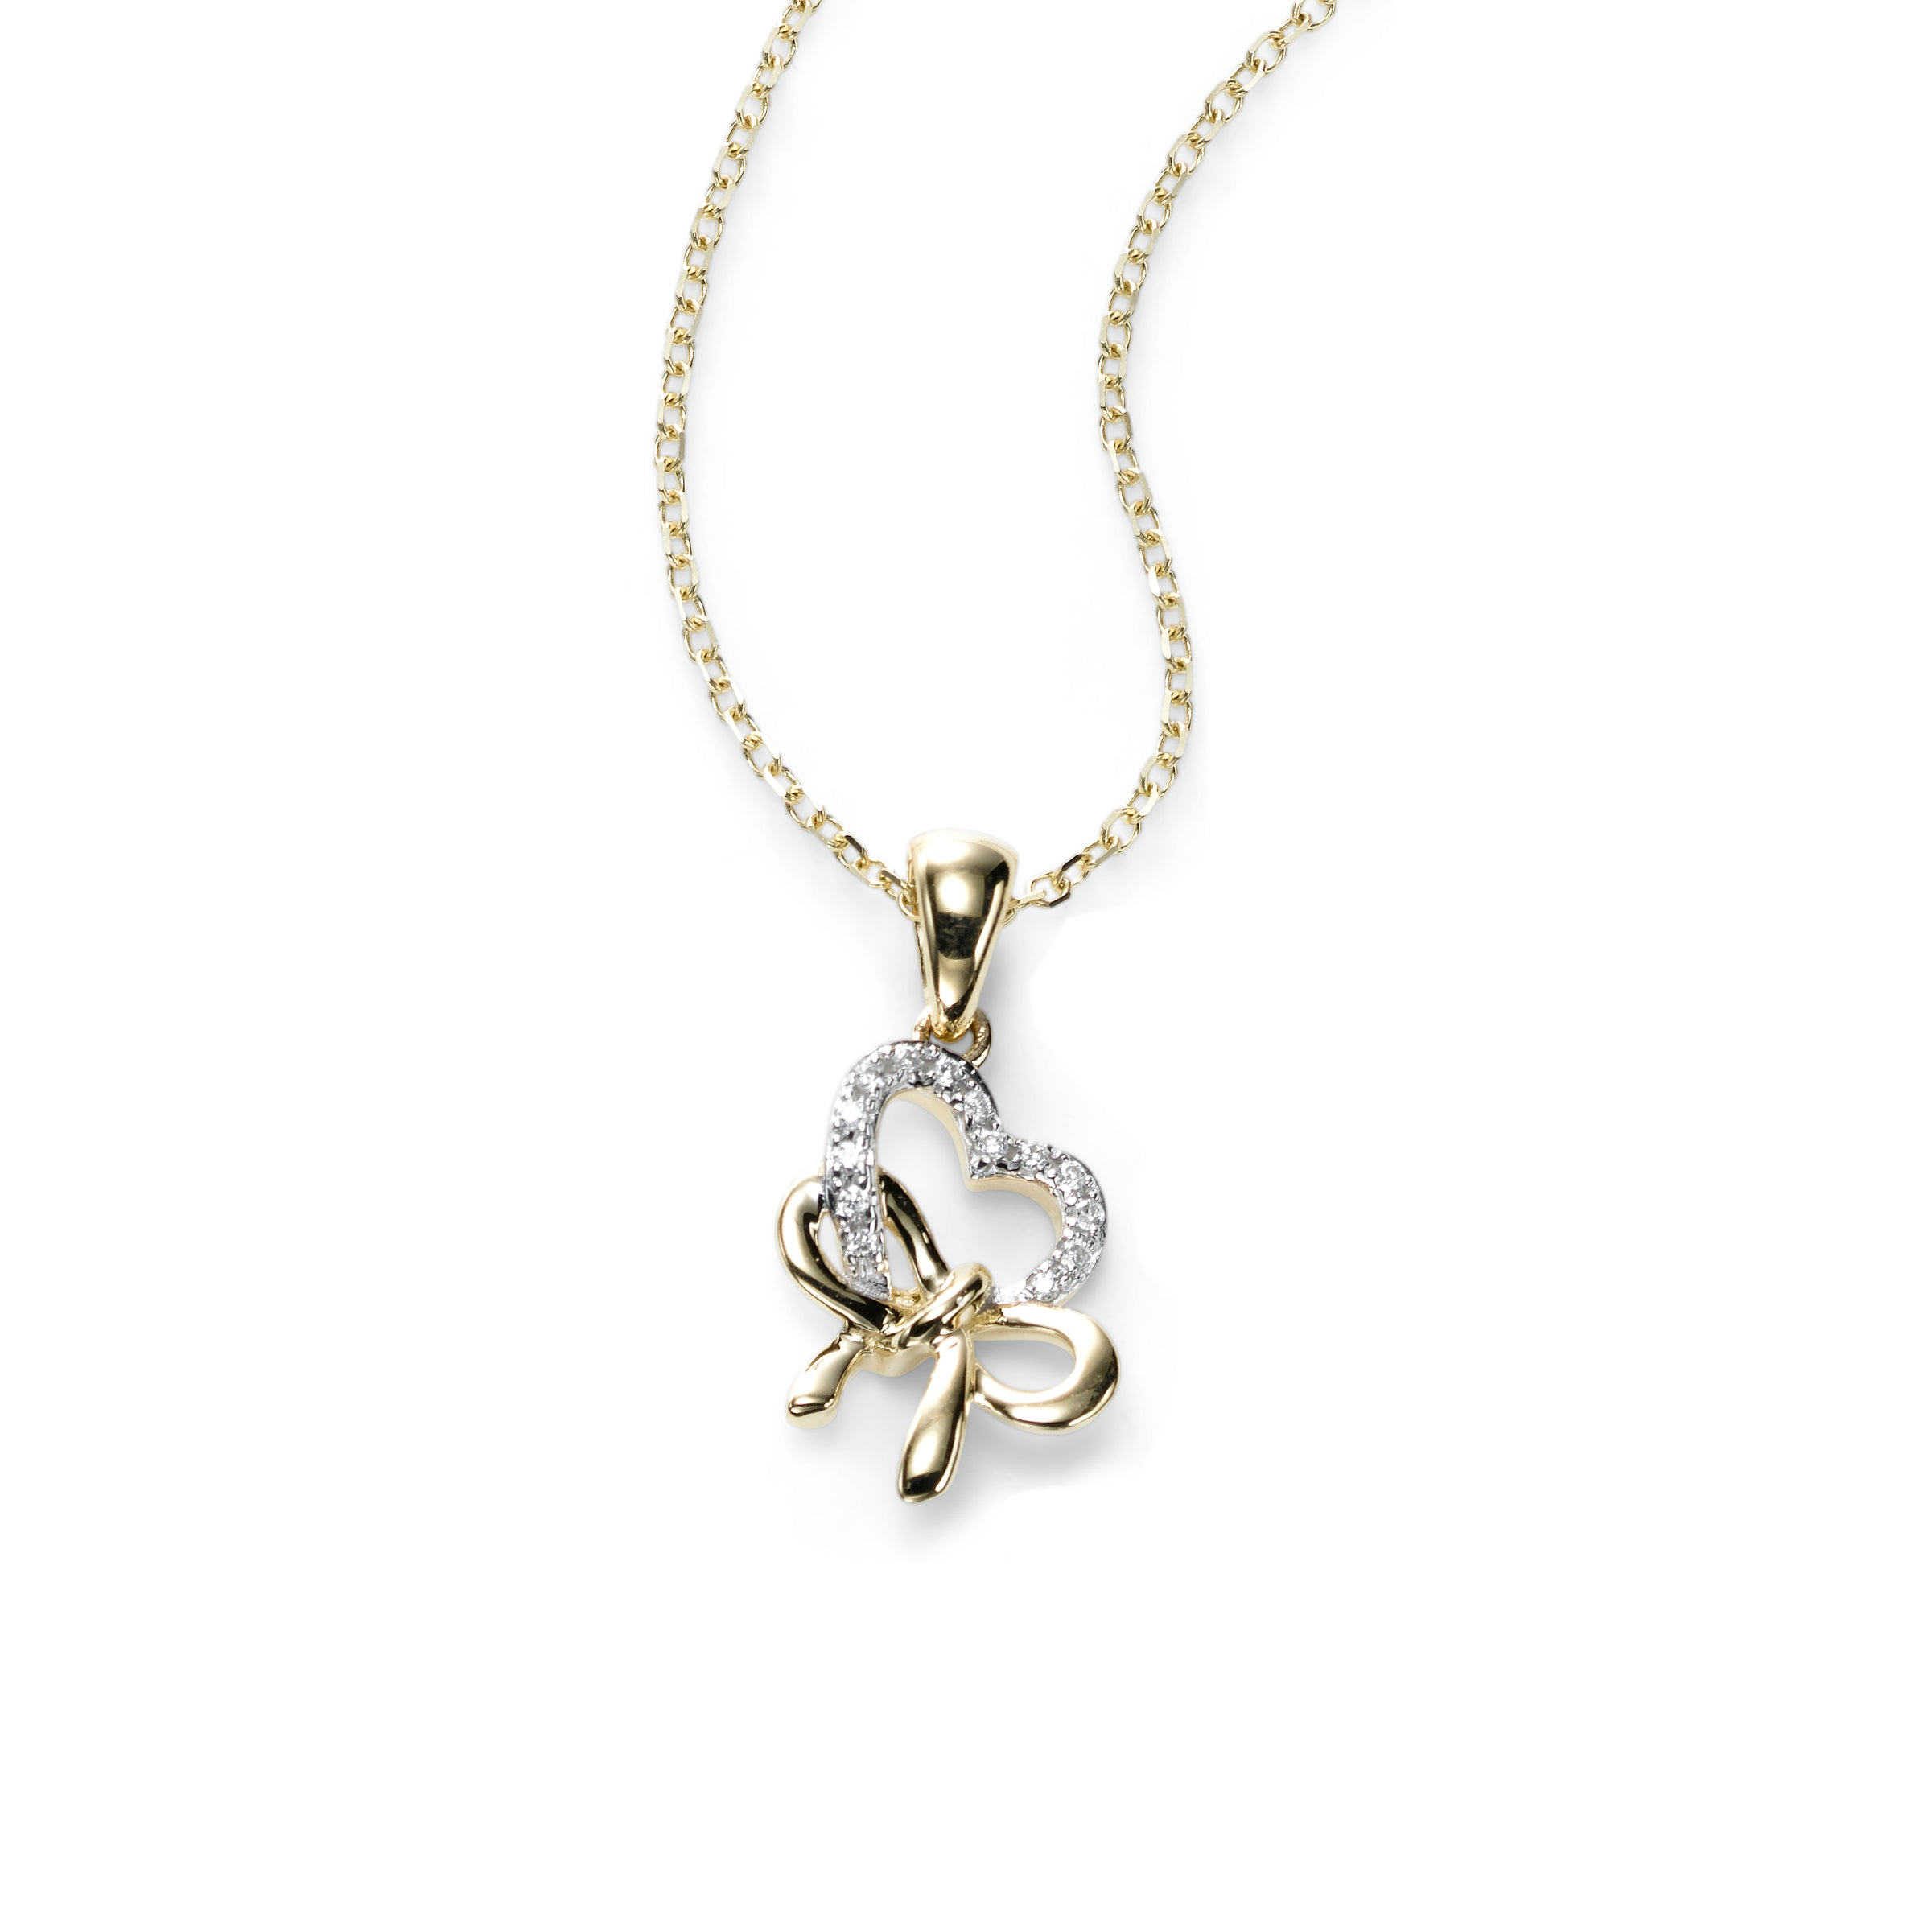 Petite Heart Bow Pendant With Diamonds, 14K Yellow Gold